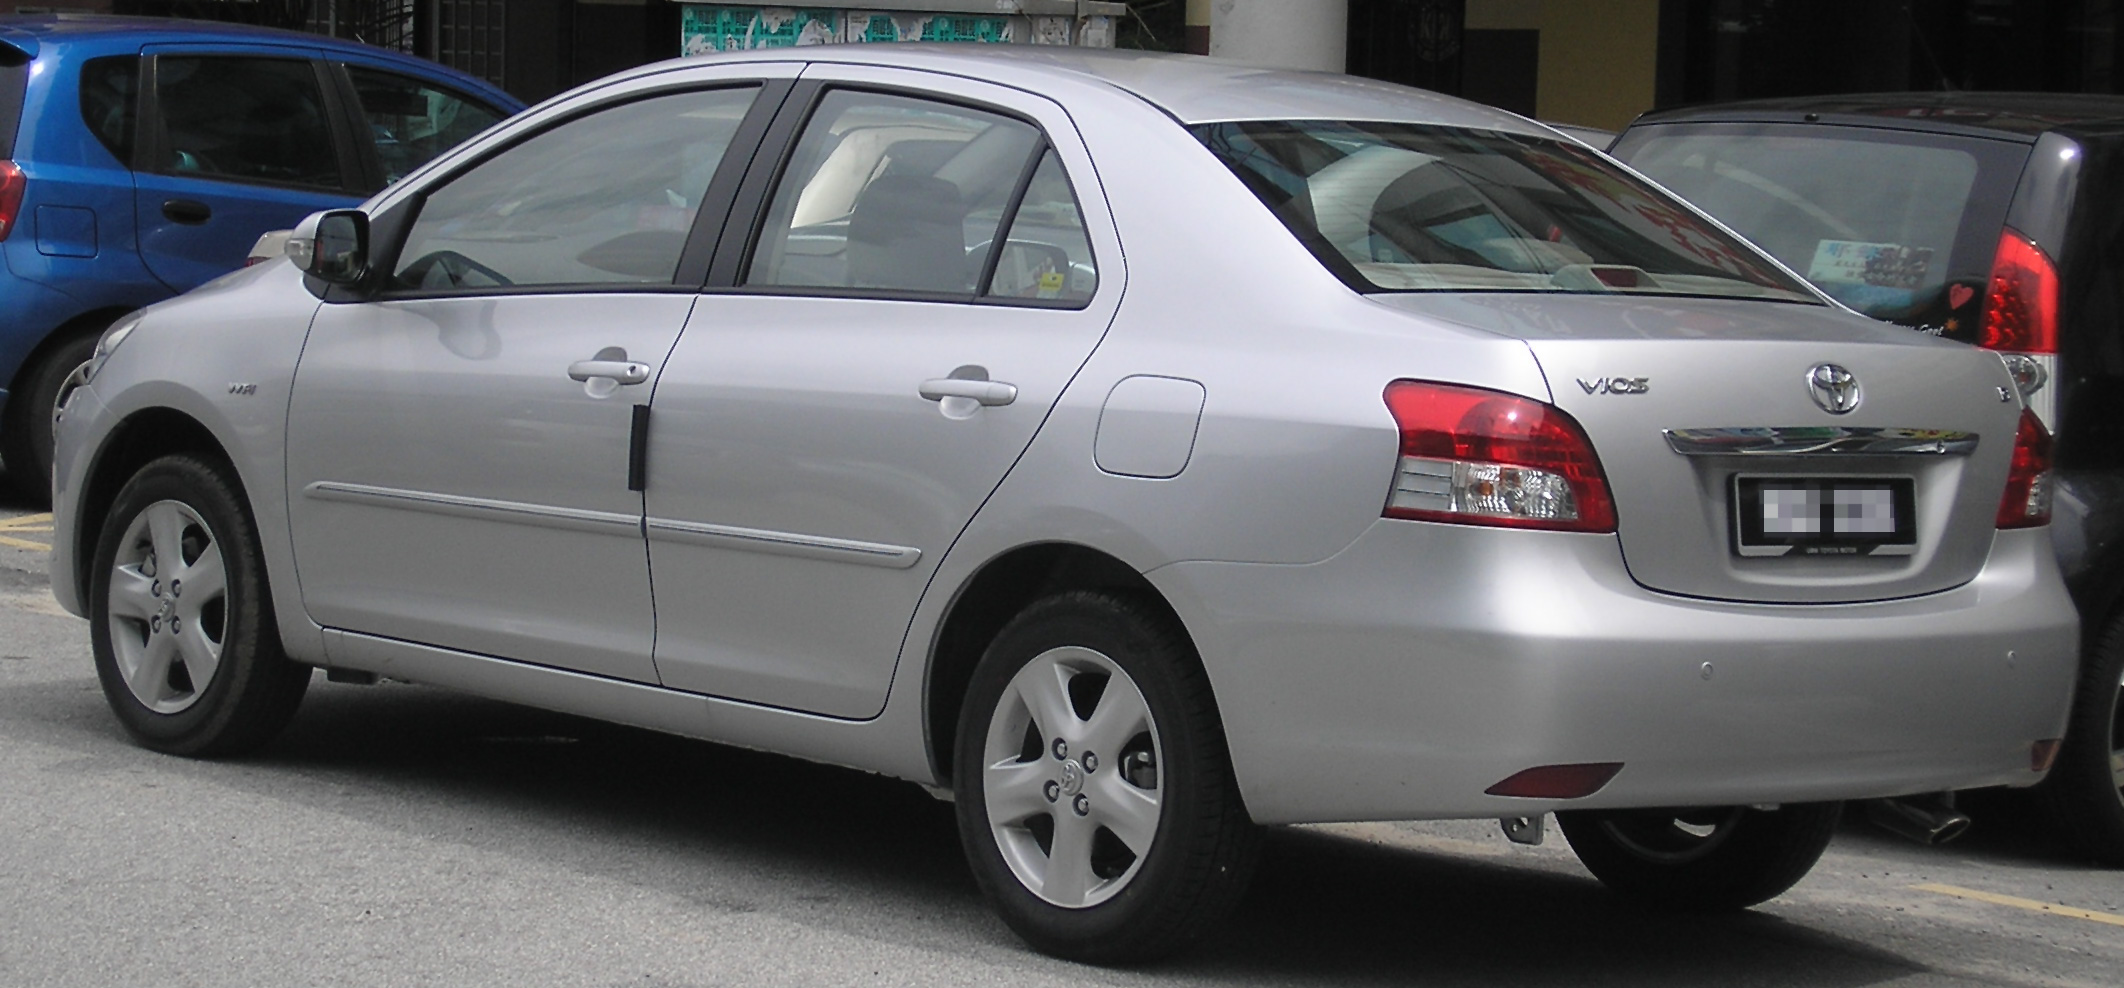 Toyota Vios Second Hand Car Price